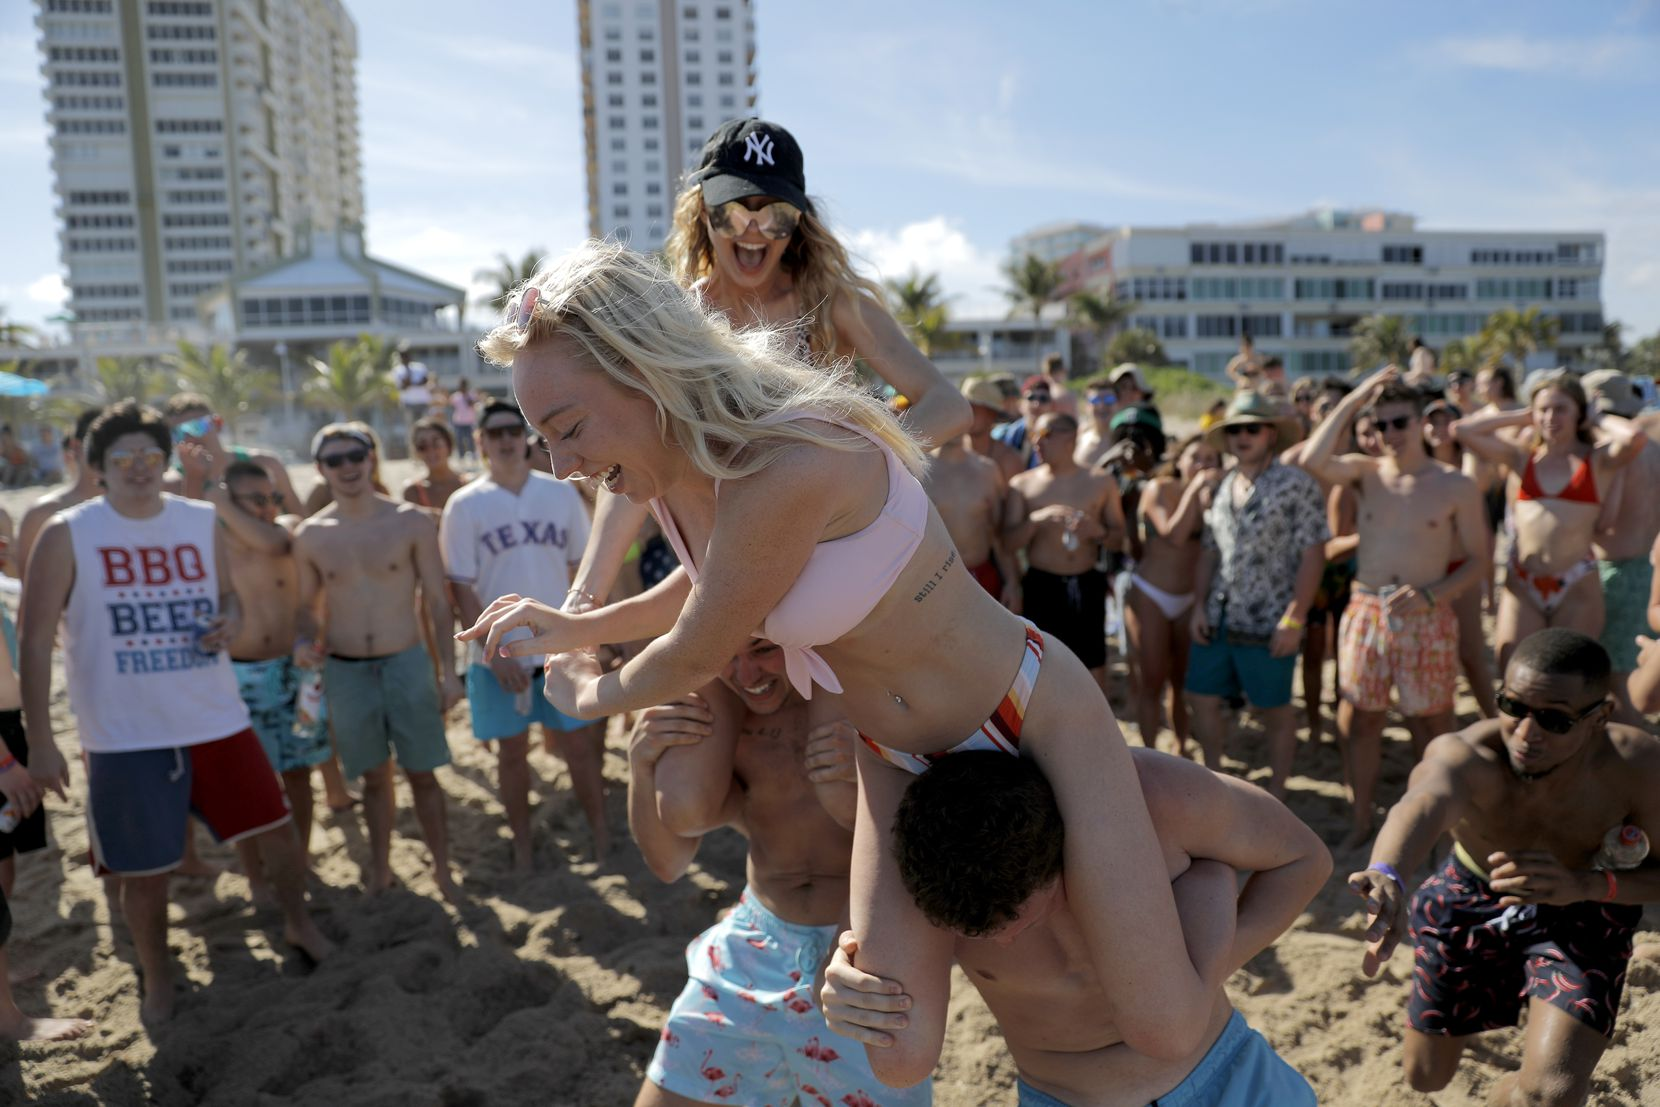 """Spring break revelers watched a """"chicken fight"""" at Pompano Beach, Fla., on Tuesday.  Dr. Anthony Fouci, director of the National Institute of Allergy and Infectious Diseases, called on young vacationers to stop flooding crowded places, for their own protection and that of others."""